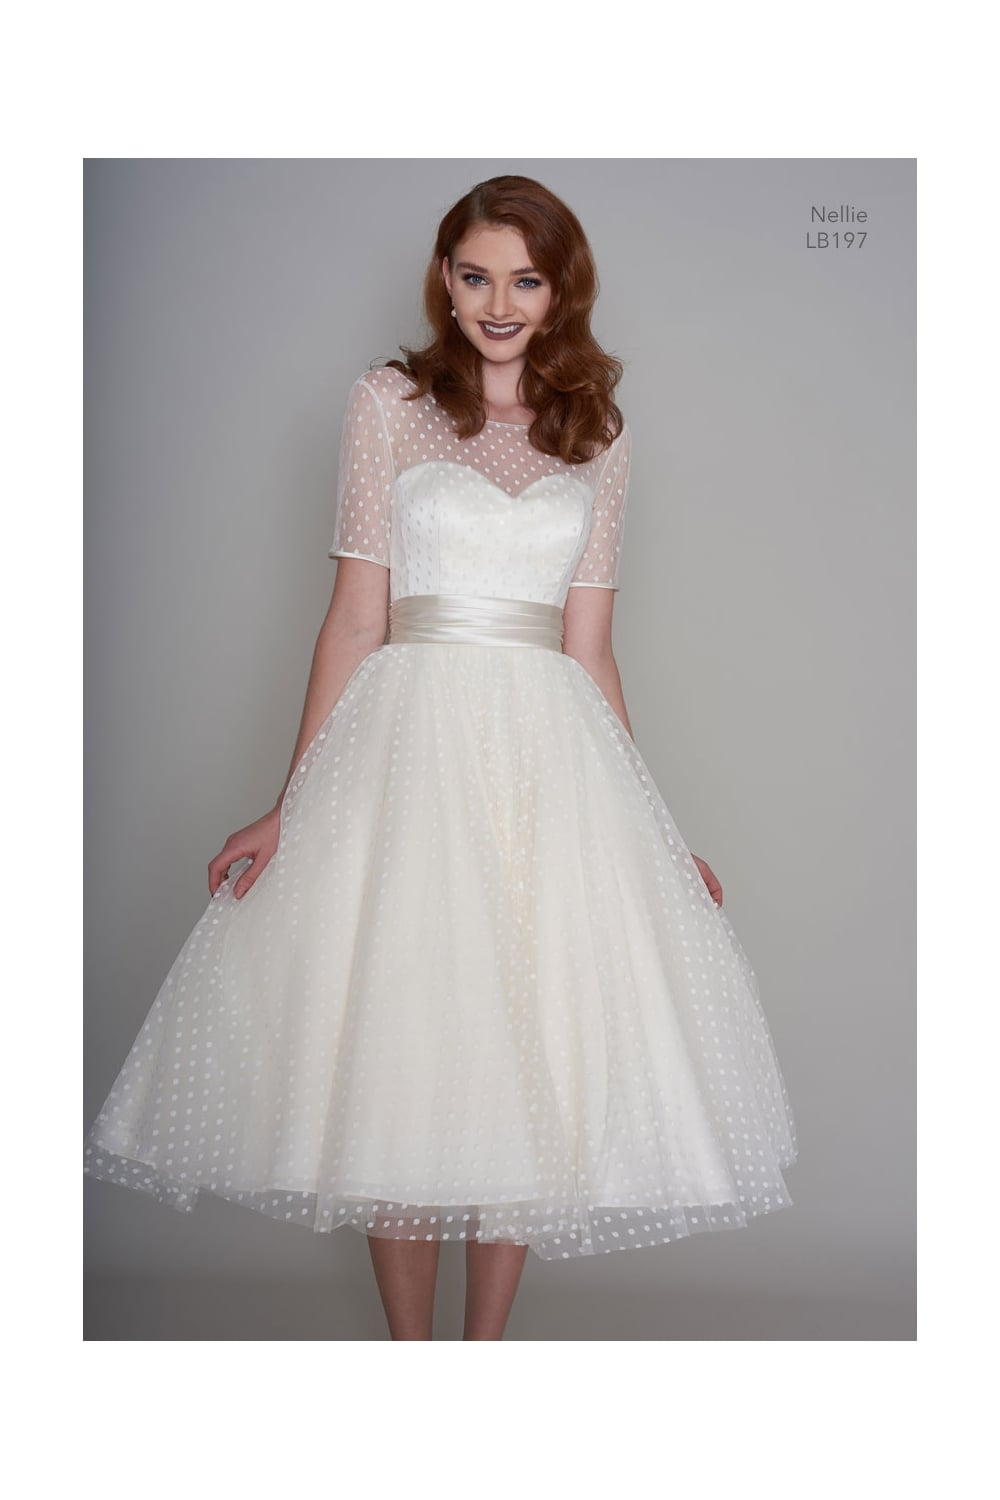 Lb197 nellie 1950s tea length polka dot short vintage wedding dress junglespirit Images